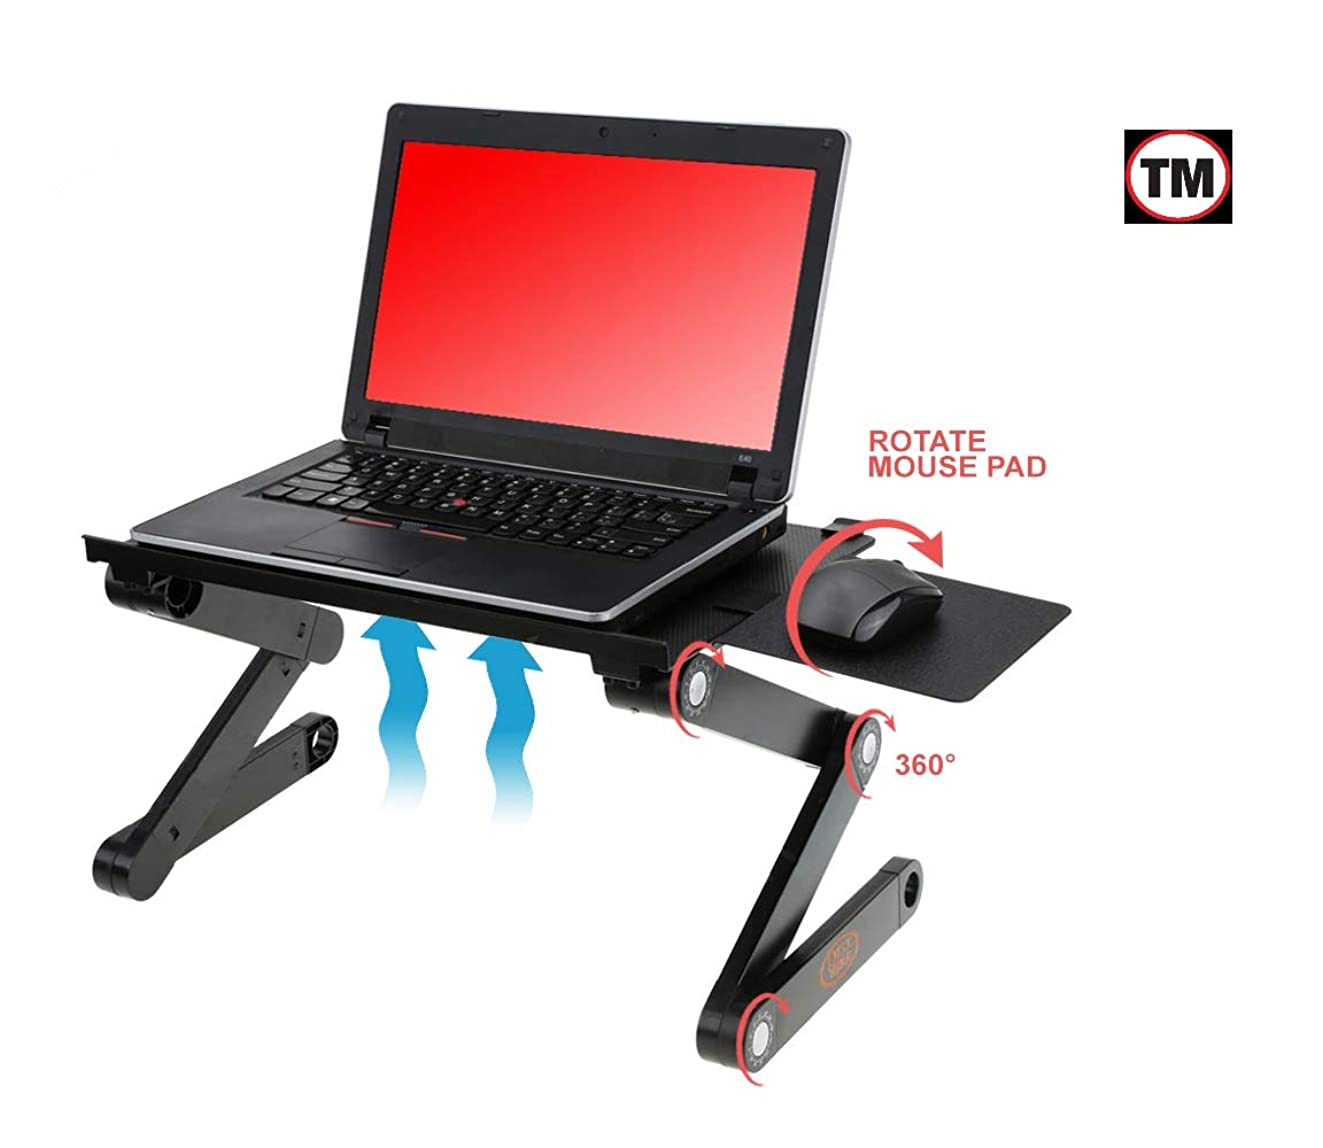 Desk York Portable Laptop Stand - Best Gift for Friend-Men-Women-Student - Recliner/Bed Lap Tray - Aluminum Light Table for Computer -2 Built in Cooling Fans - Mouse Pad and USB Cord -Up to 17